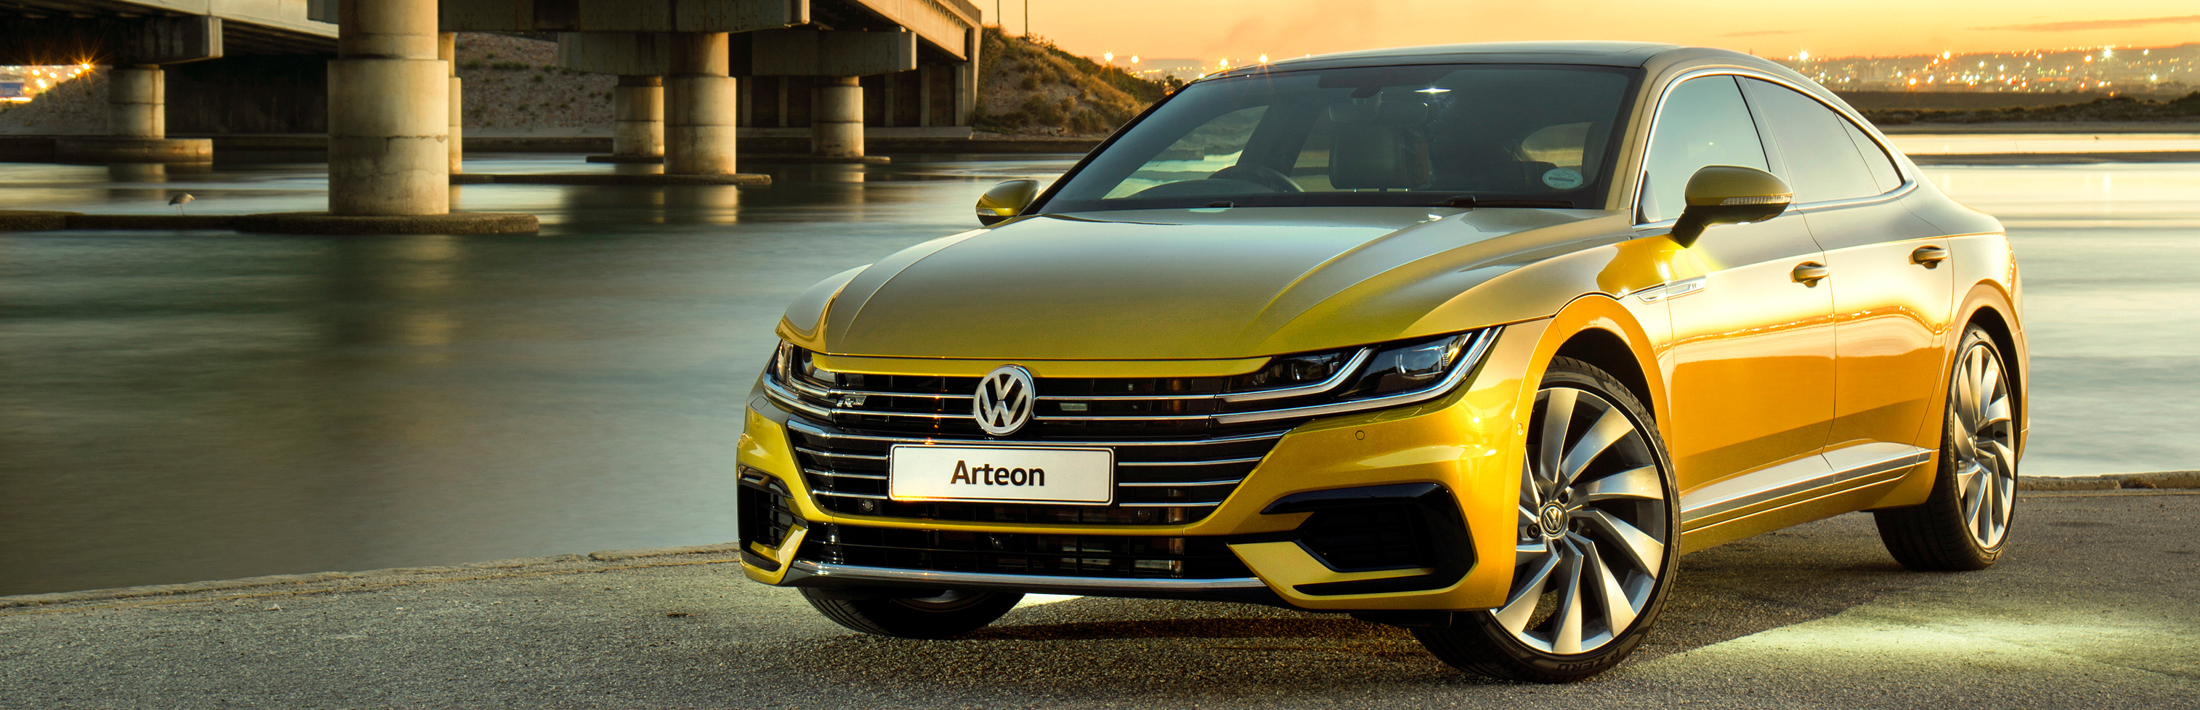 Arteon Offer Slider 2